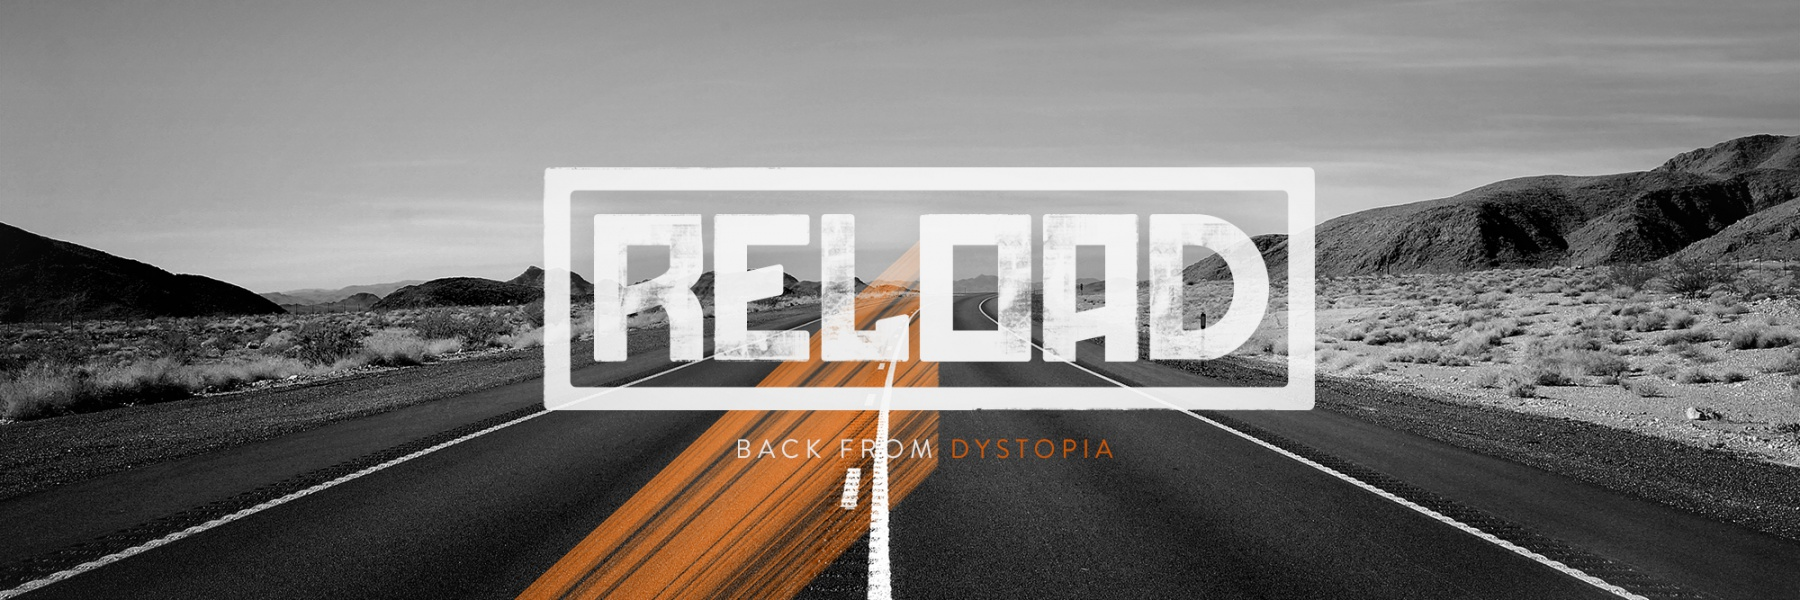 Dystopia_reload_logo_sight03